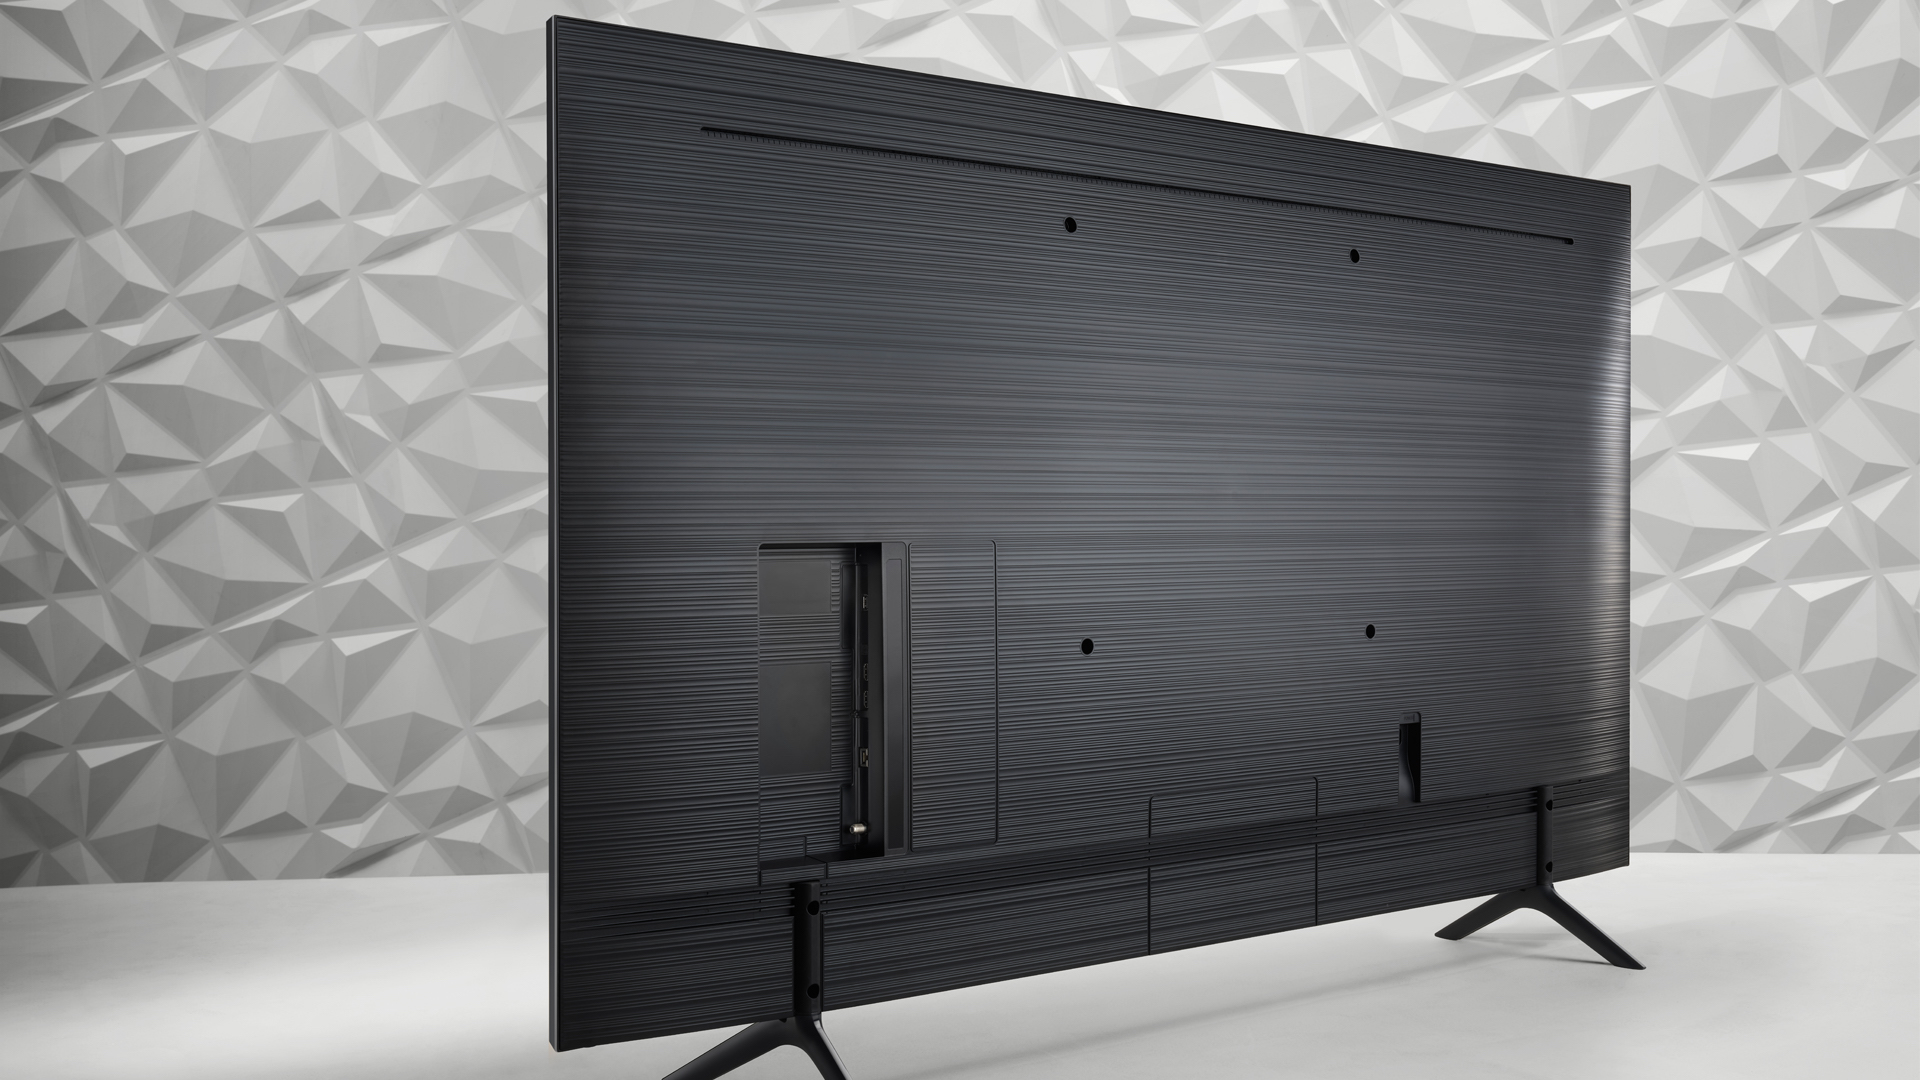 The back of the Samsung Q60R QLED TV